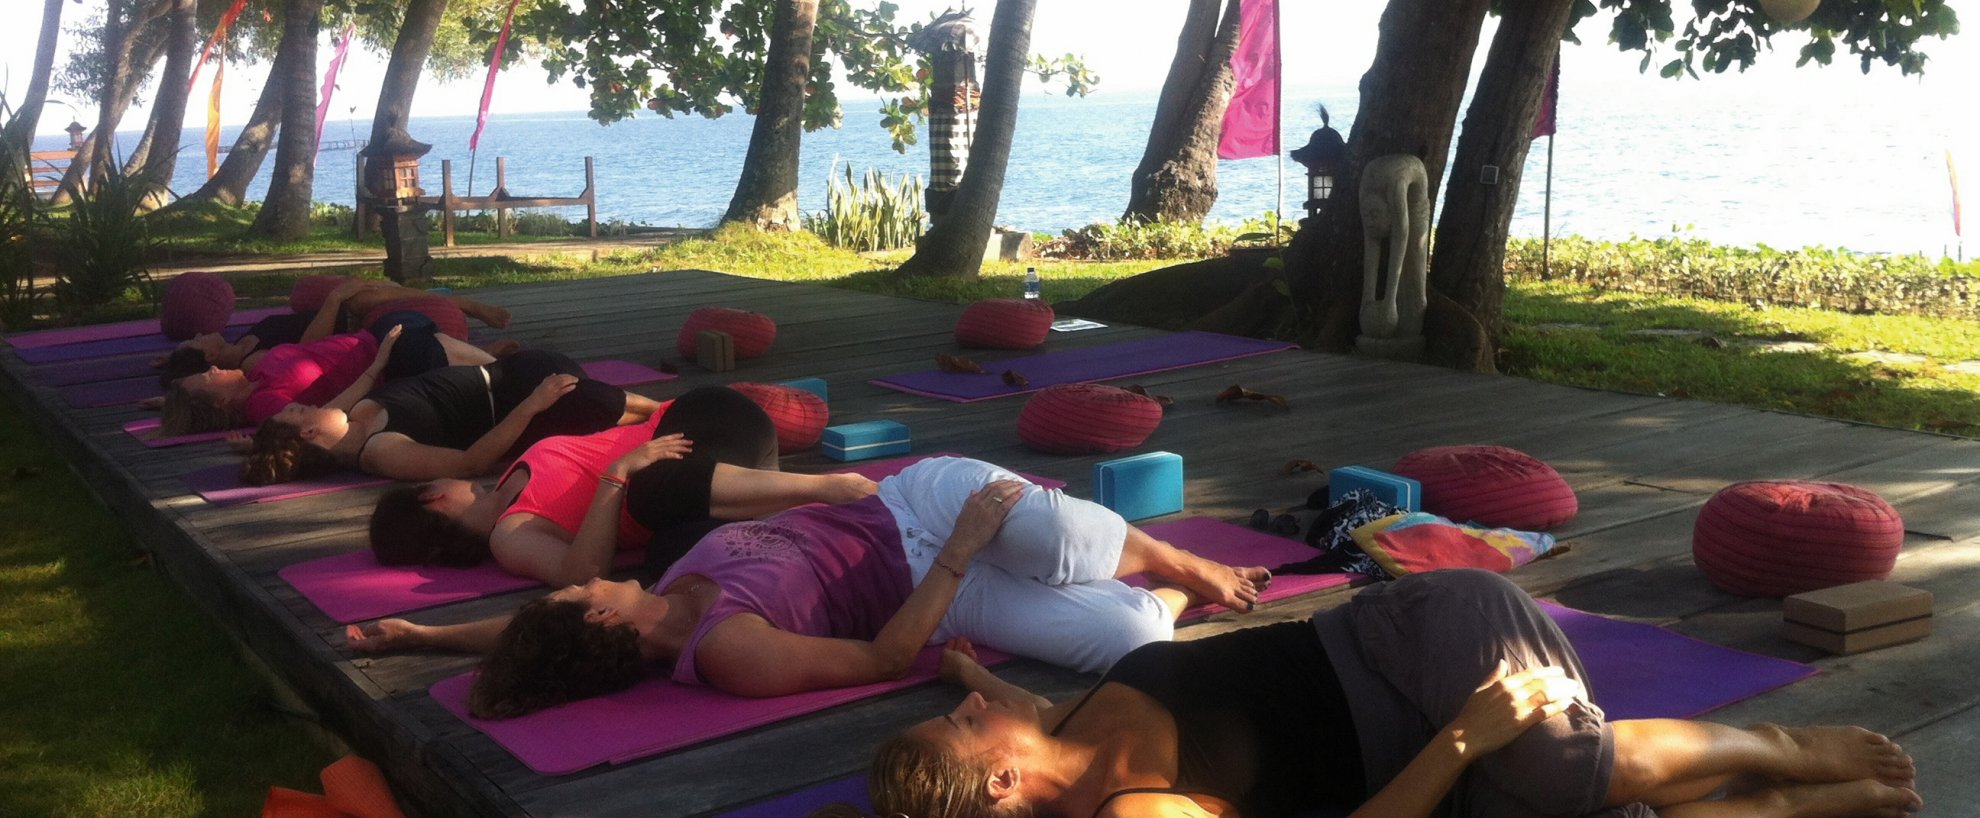 Indonesien Bali Holiway Garden Resort and Spa Yoga Meditation